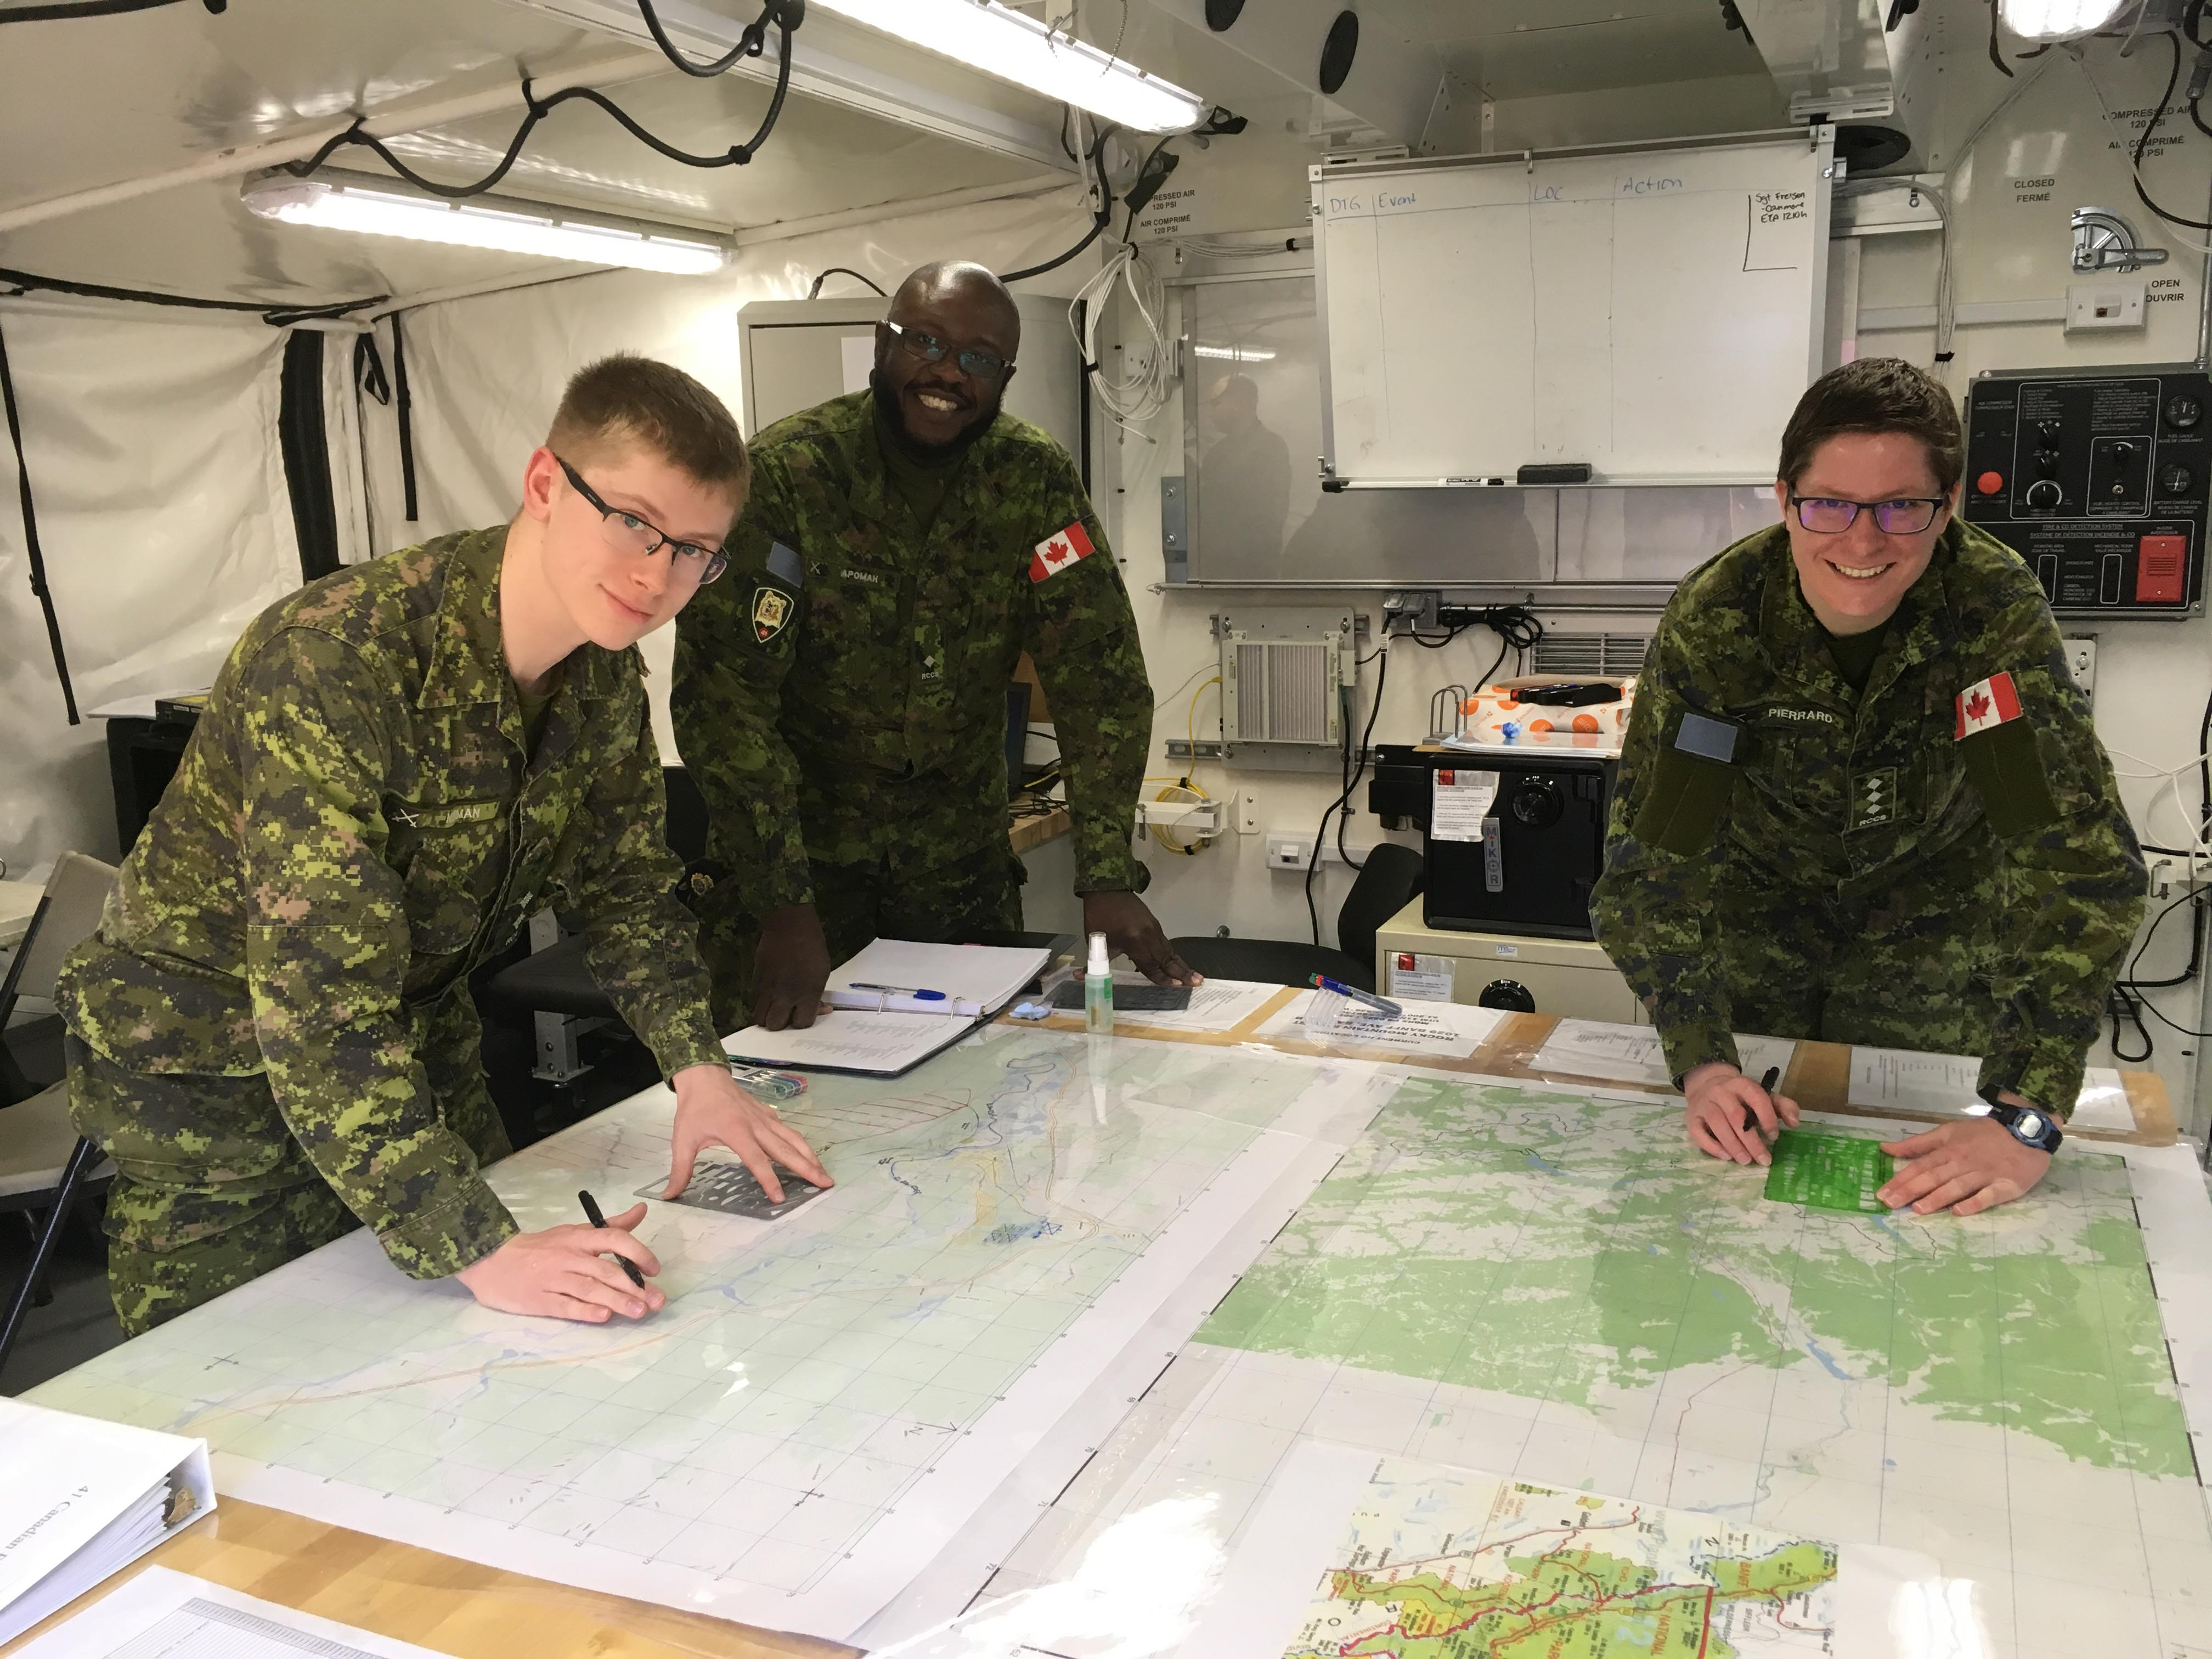 Canadian army in Banff for wildfire response and readiness exercises